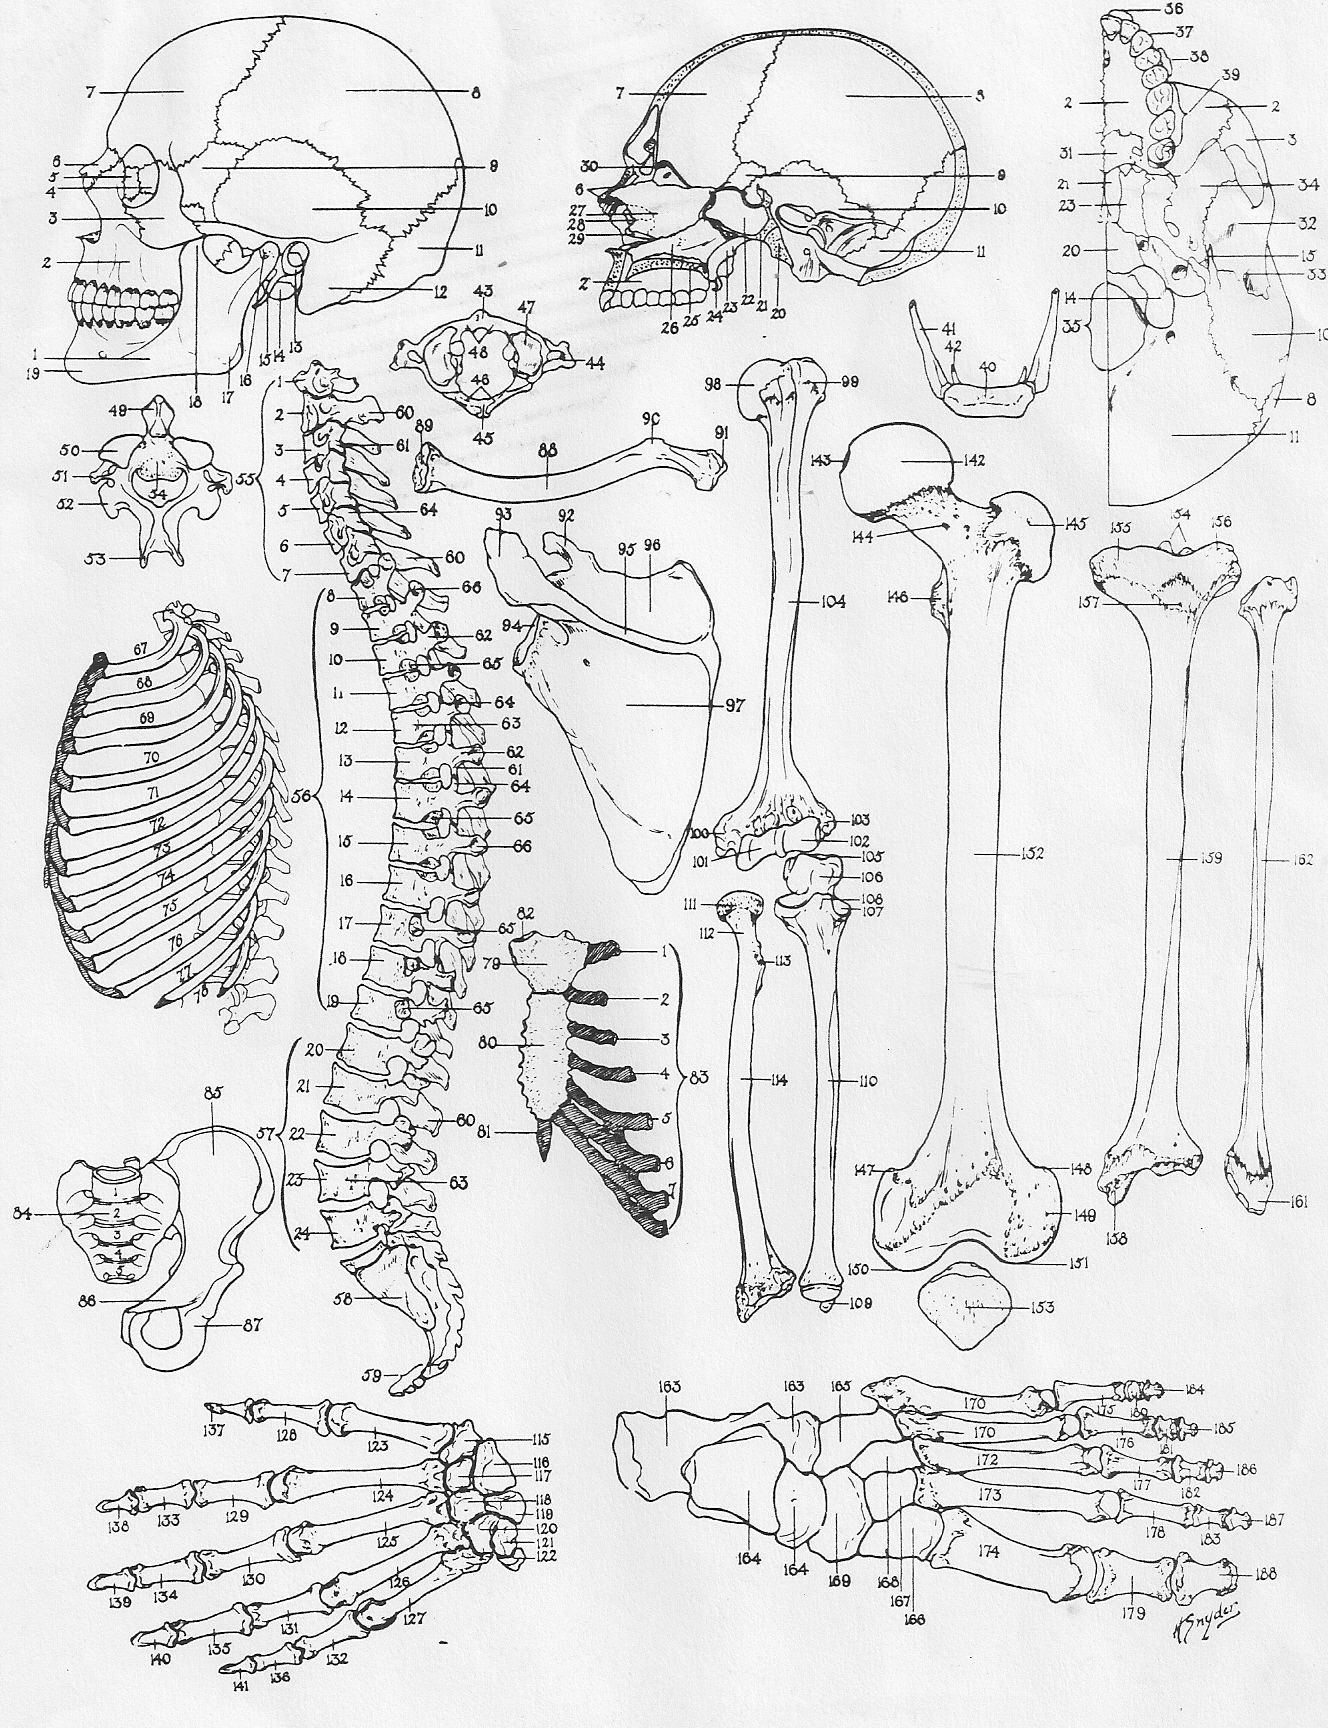 Pin by Kim Pozza on Mini books and printables | Anatomy coloring ...